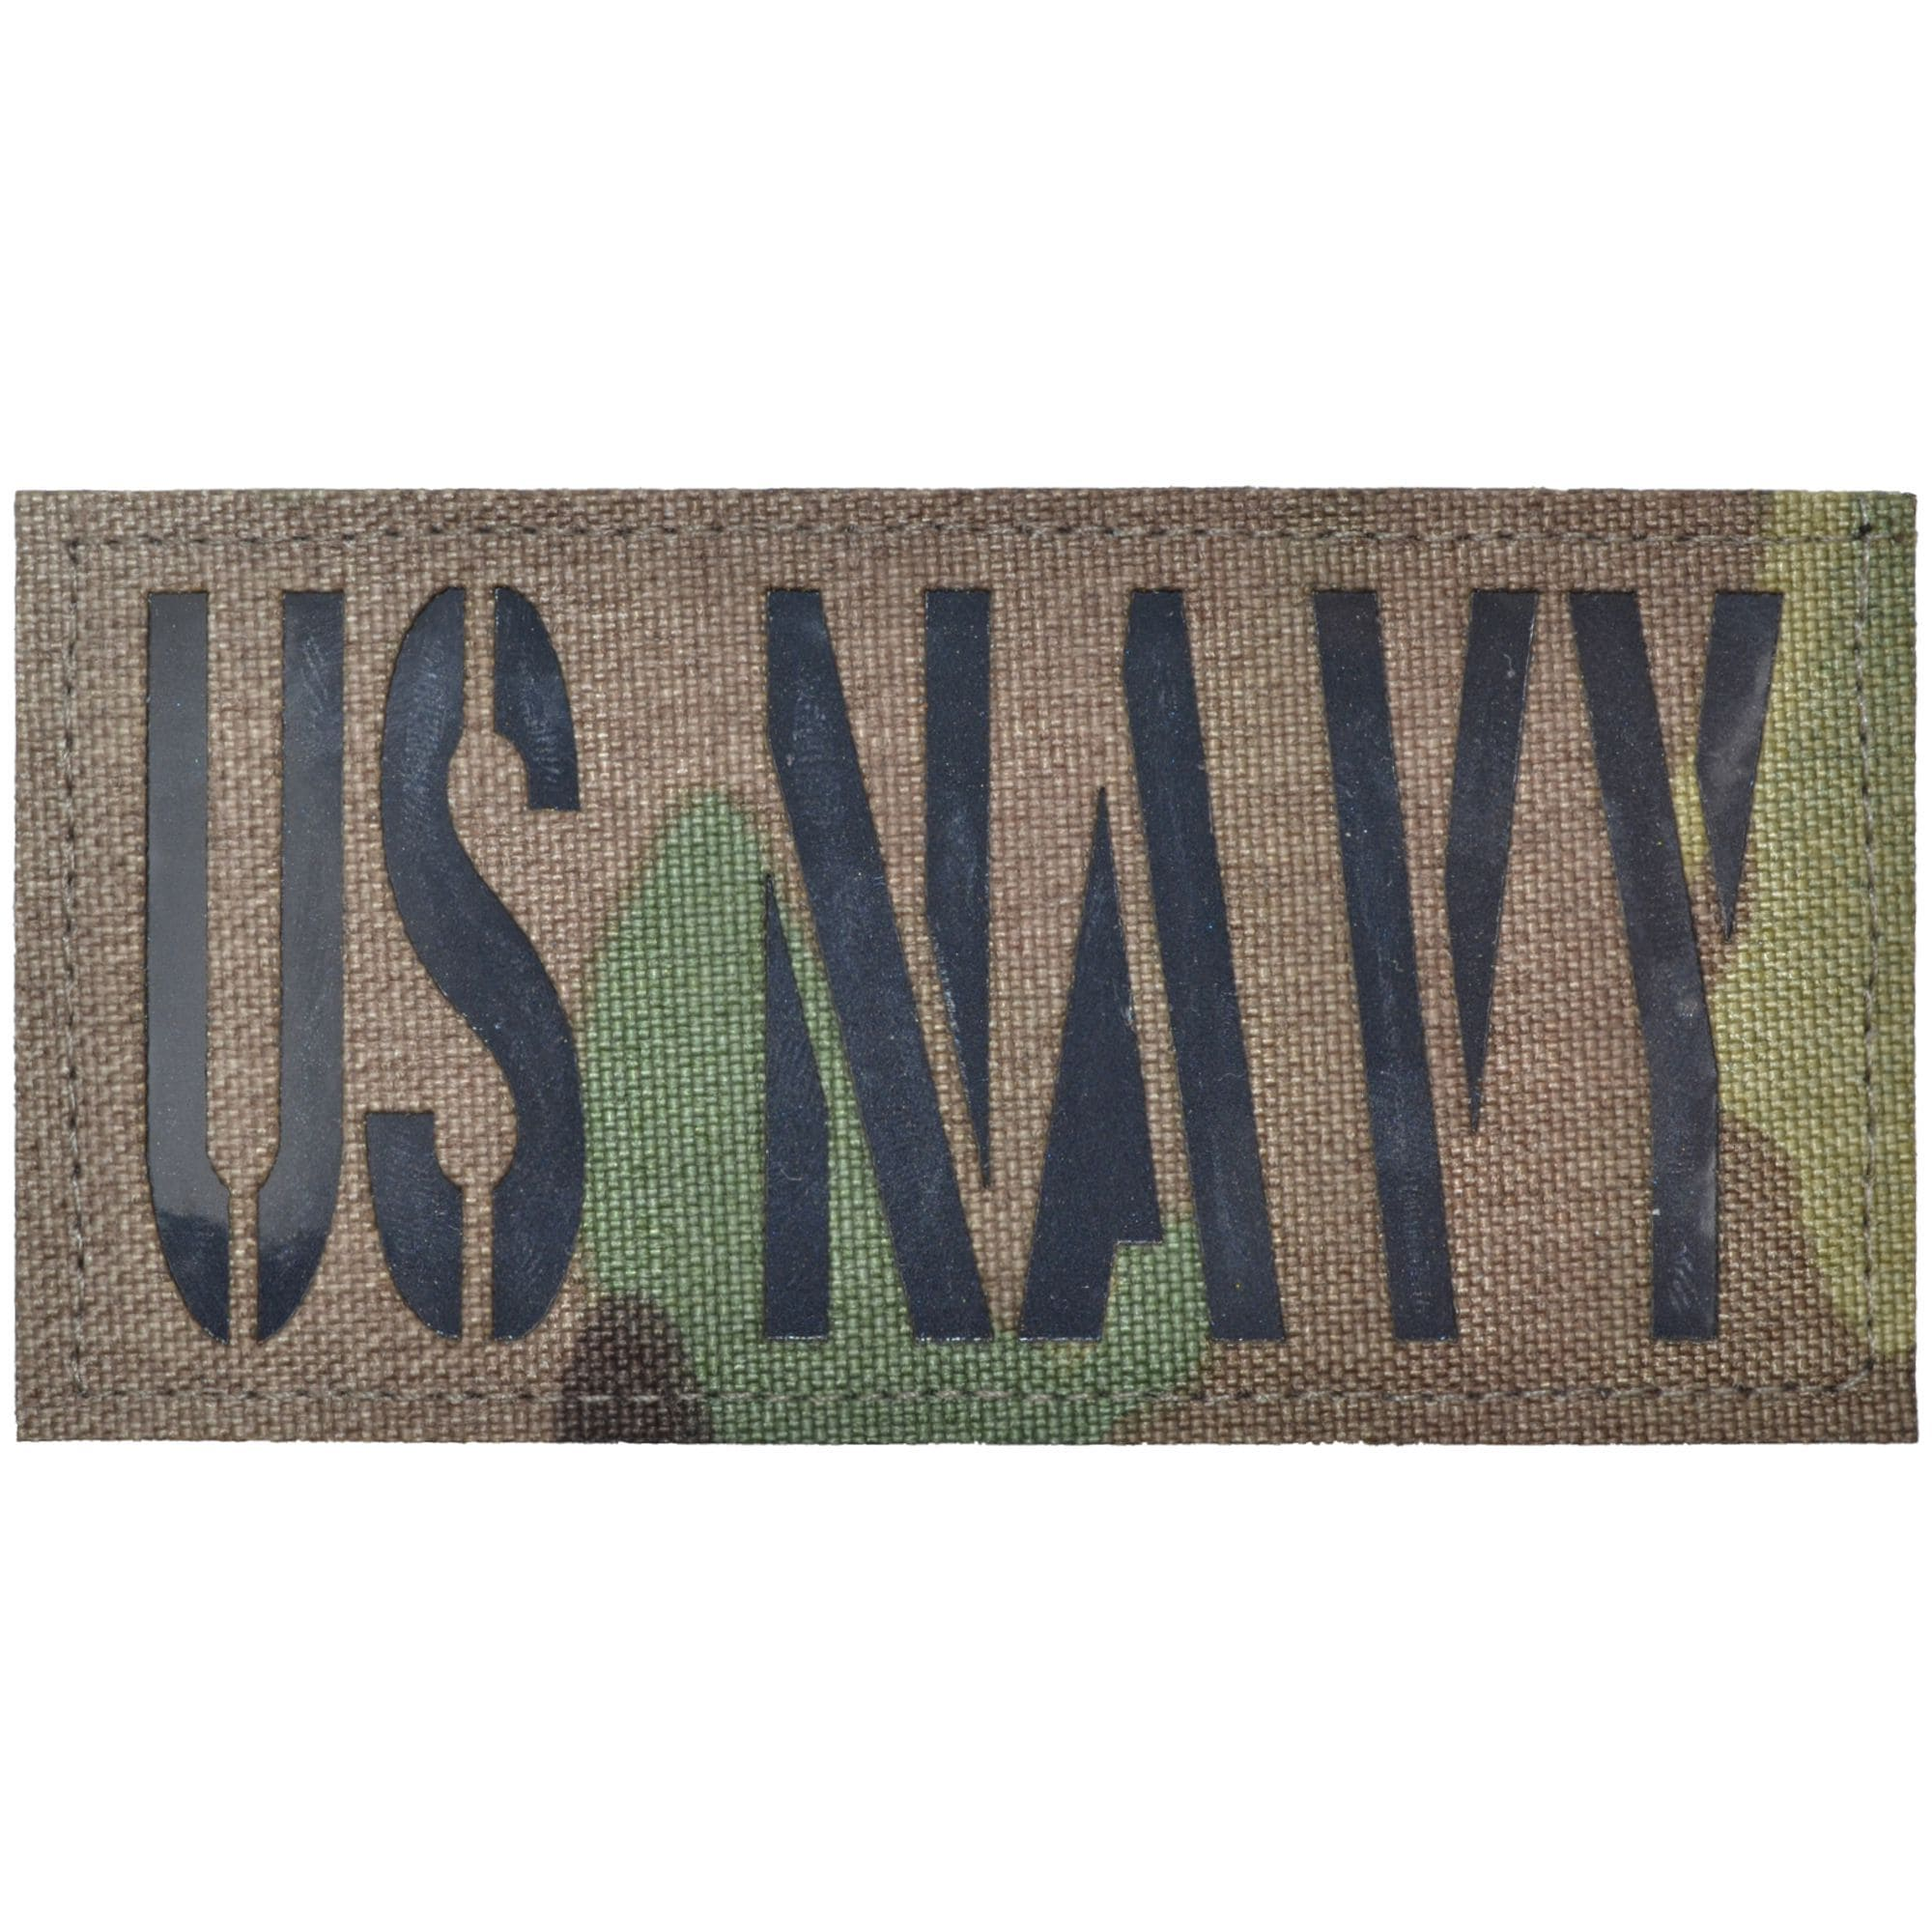 US Navy Laser Cut Reflective - 2x4 CORDURA® Patch